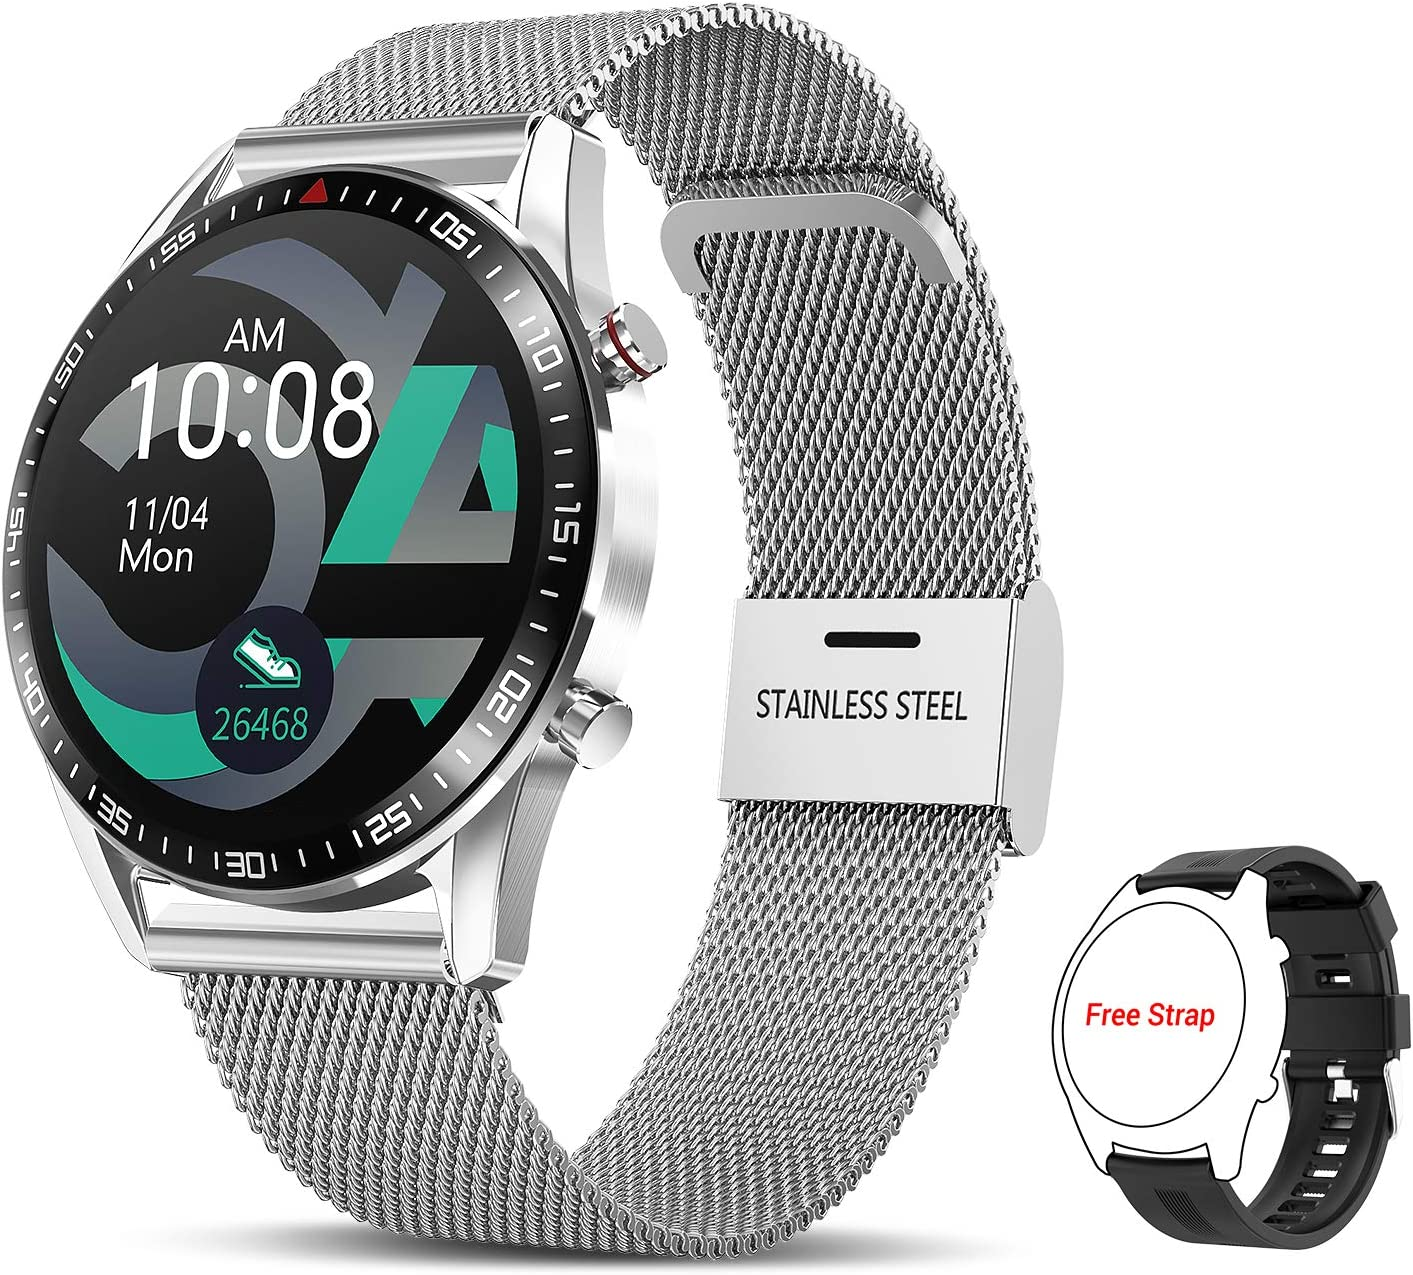 San Antonio Mall Tagobee Max 62% OFF Smart Watch for Android Smartwatch iOS Phones Bluetooth